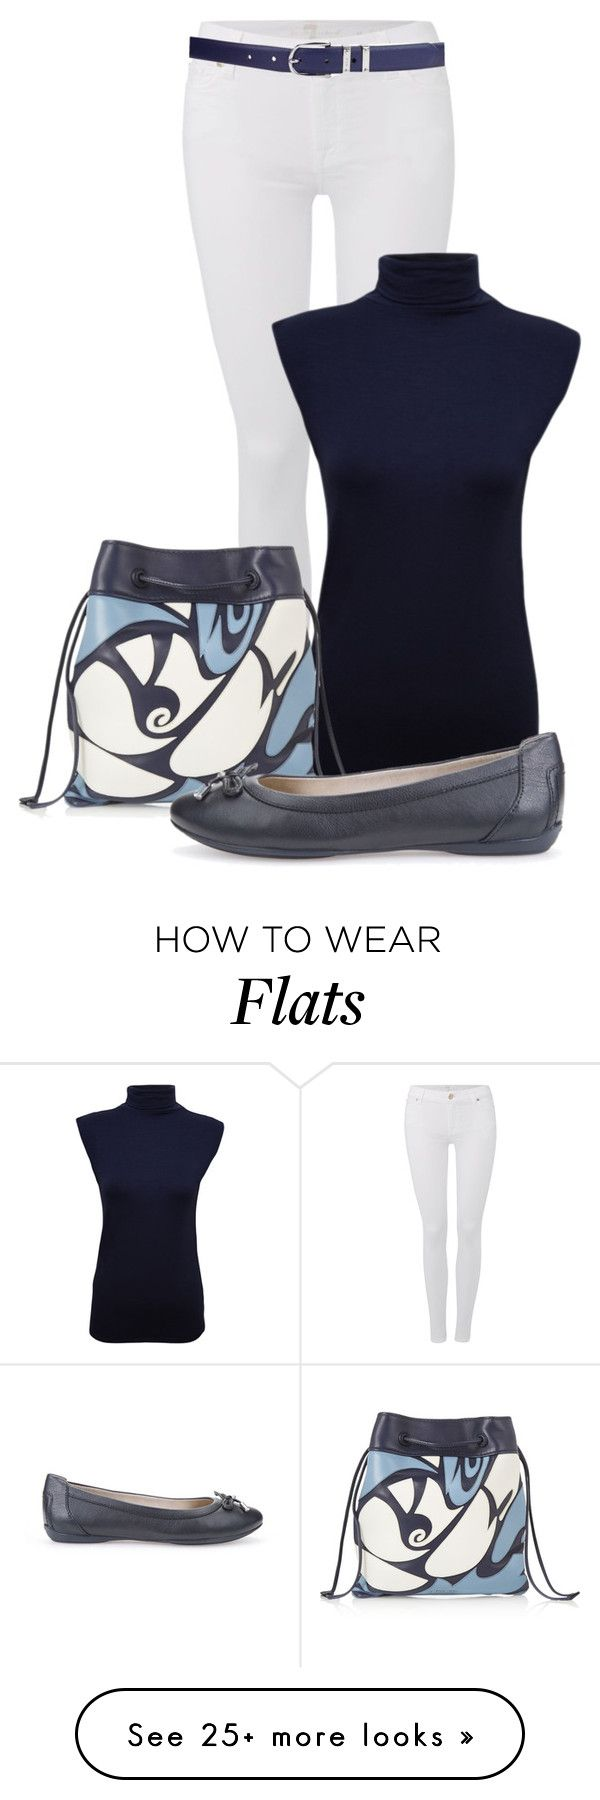 """""""Jeans and Flats ~6"""" by billi29 on Polyvore featuring 7 For All Mankind, WearAll, Miu Miu, Geox, Lauren Ralph Lauren, women's clothing, women's fashion, women, female and woman"""